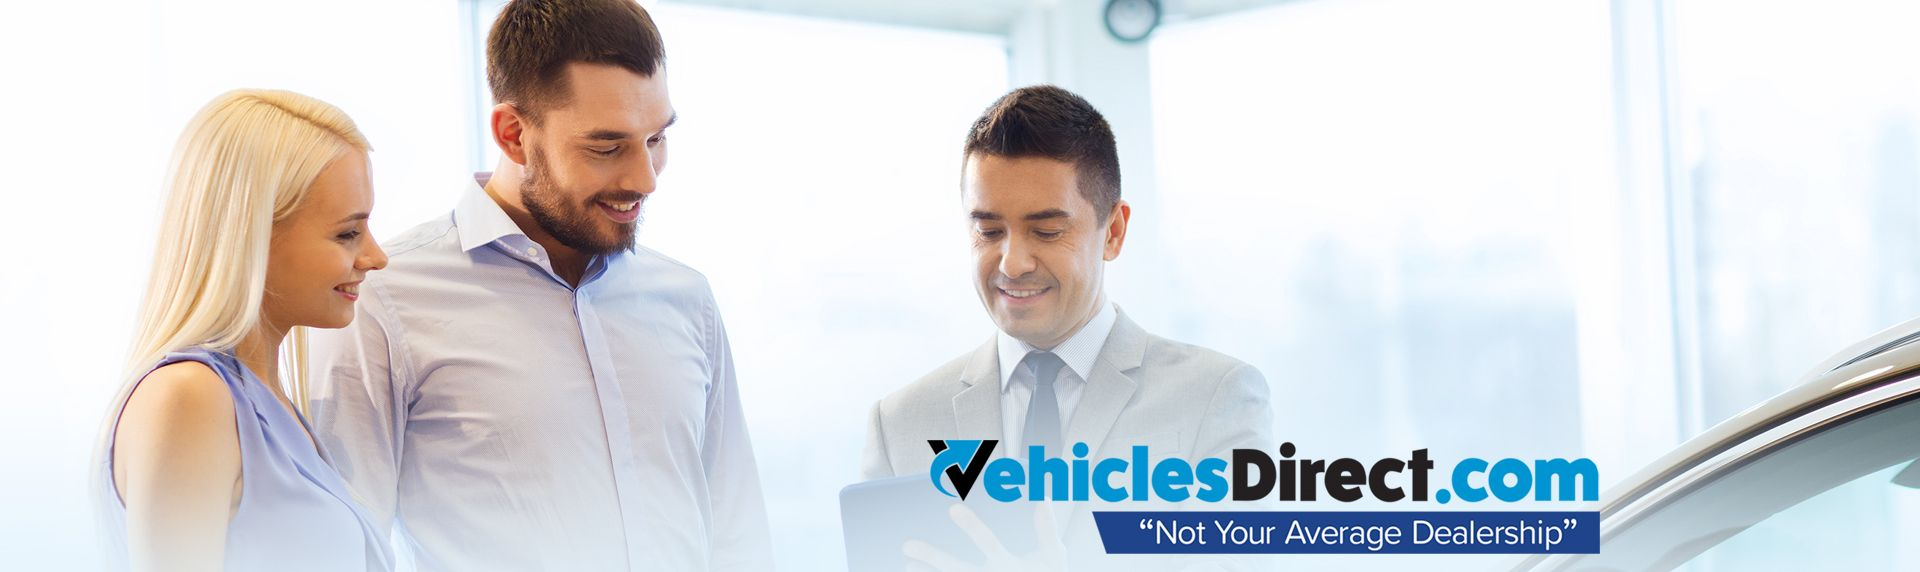 Vehicles Direct is not your average dealership.